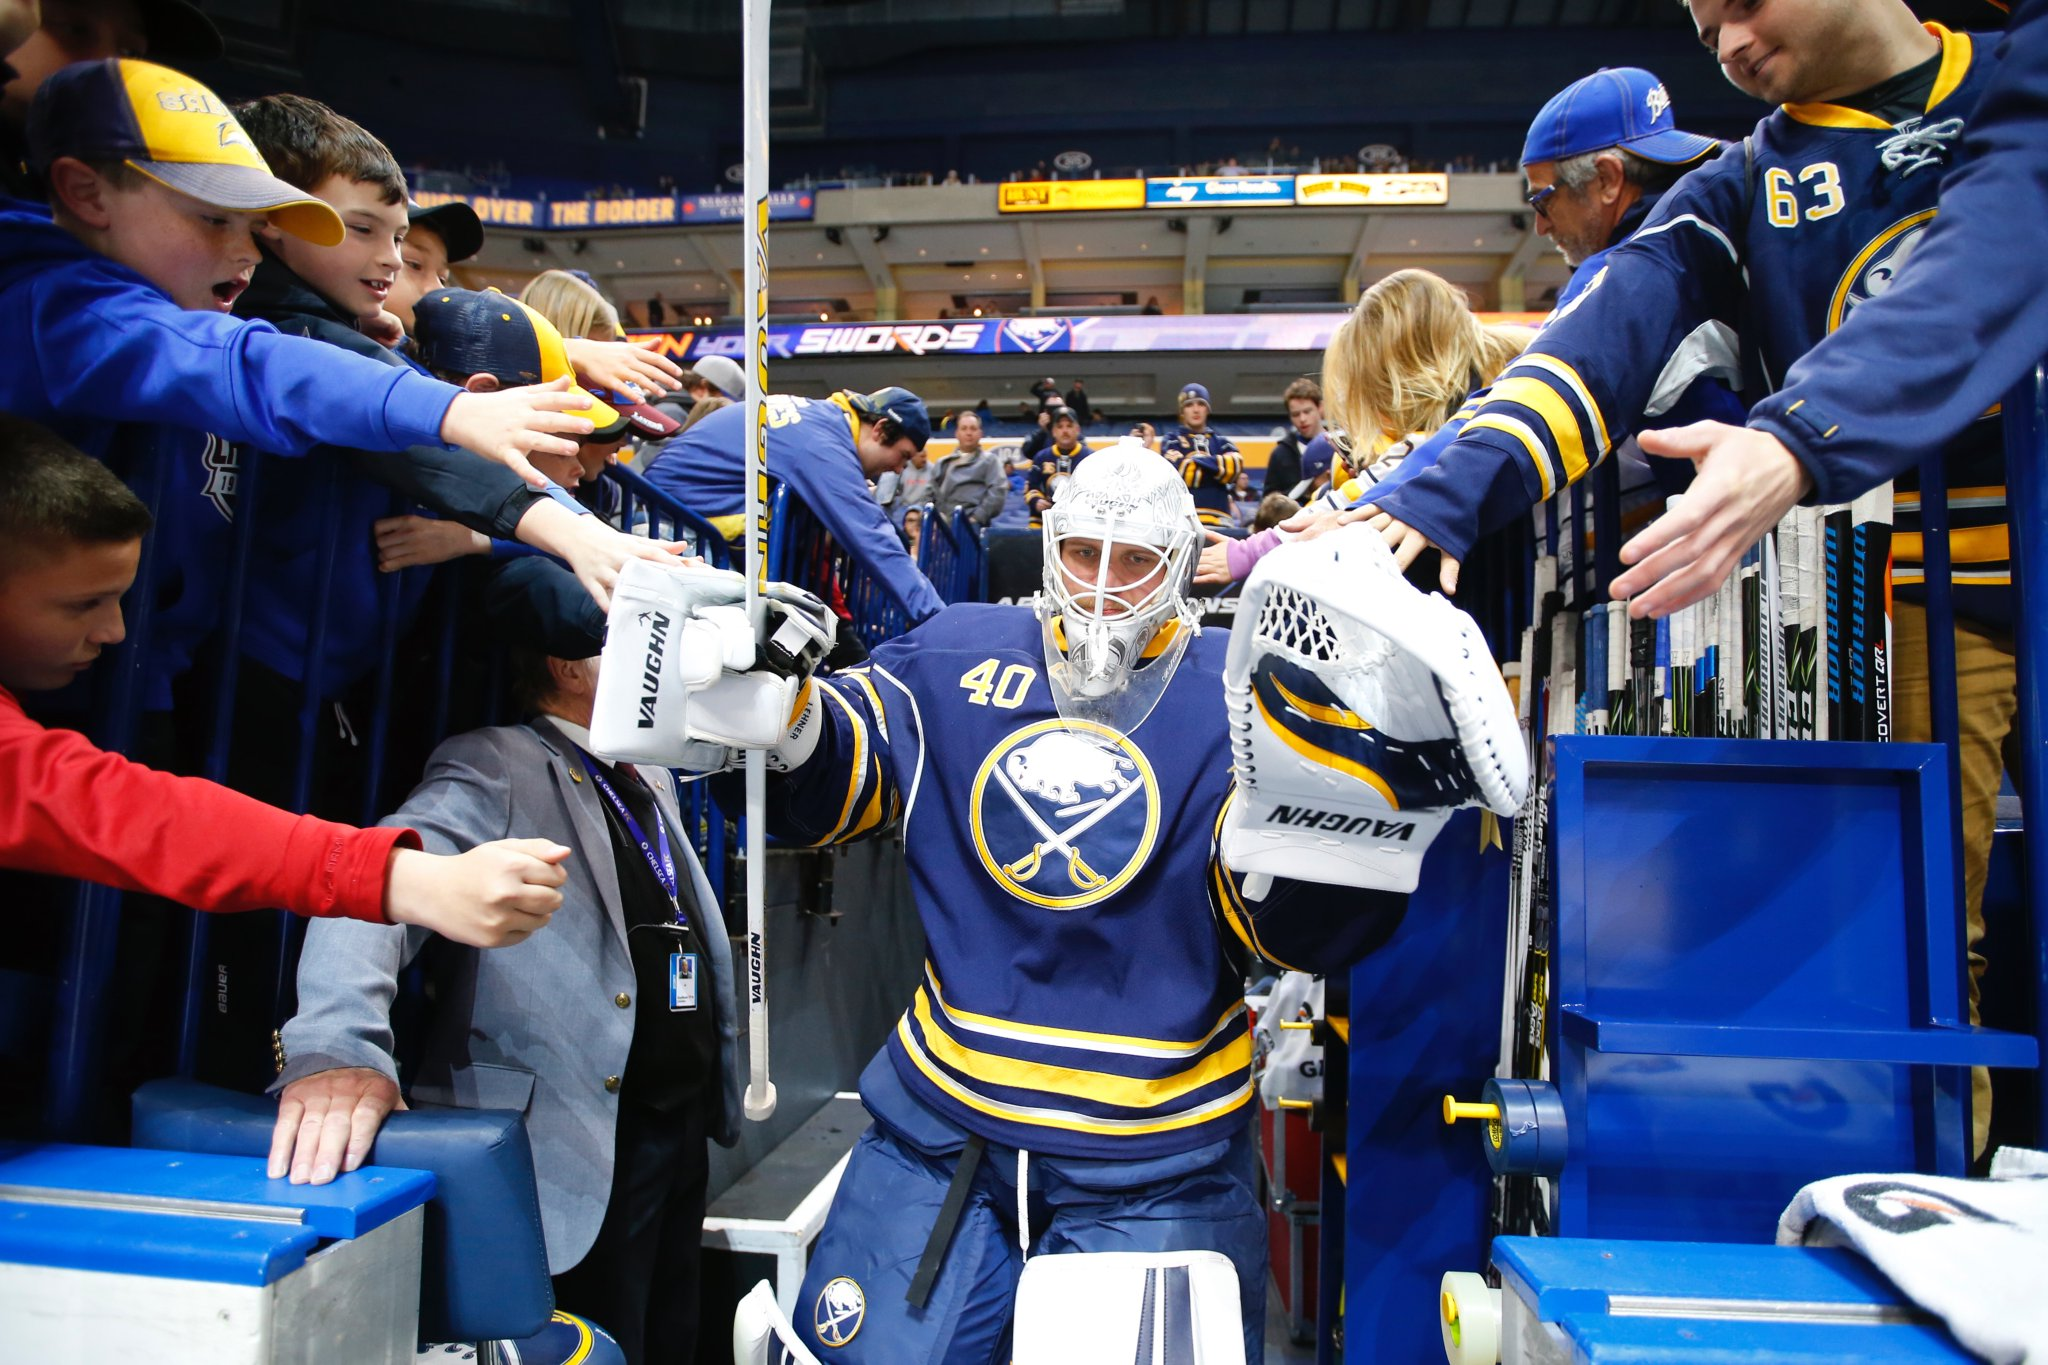 Robin Lehner leads the Sabres onto the ice for the game against the Flames. (Harry Scull Jr./Buffalo News)